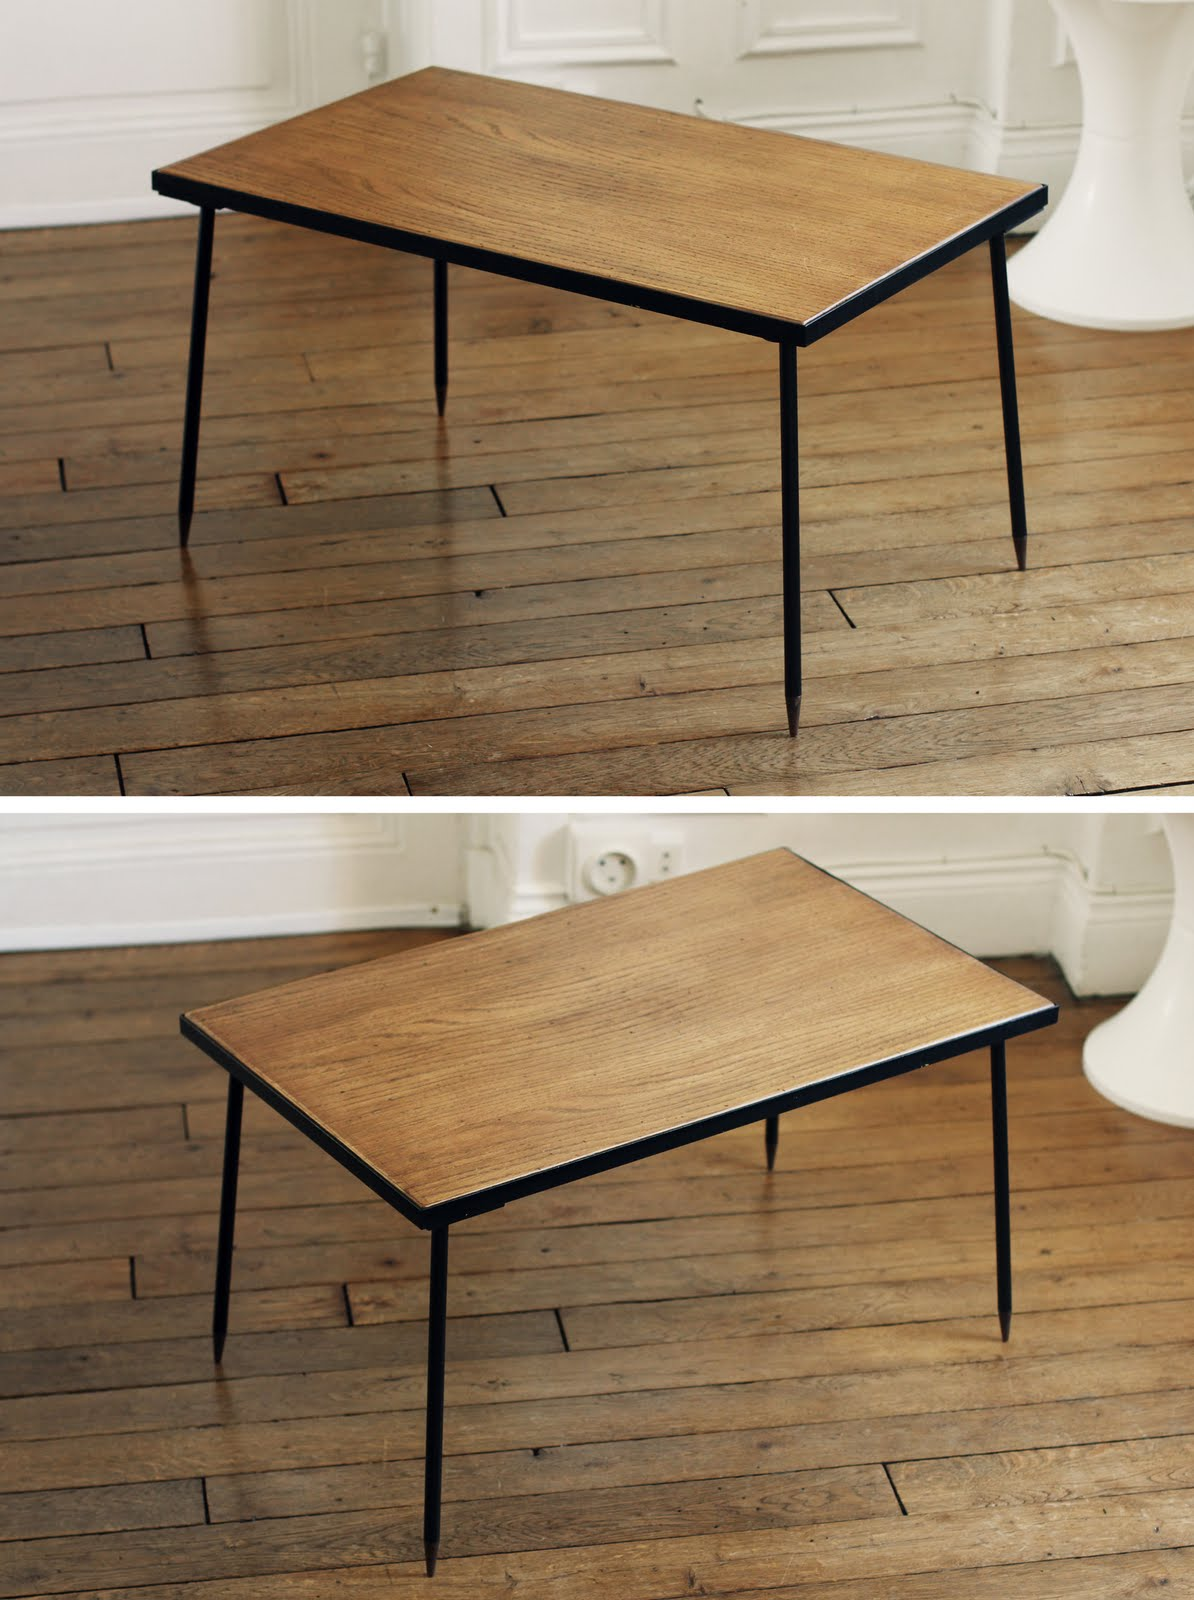 De derri re les fagots la table basse v 100 euros vendue - Les tables basses ...